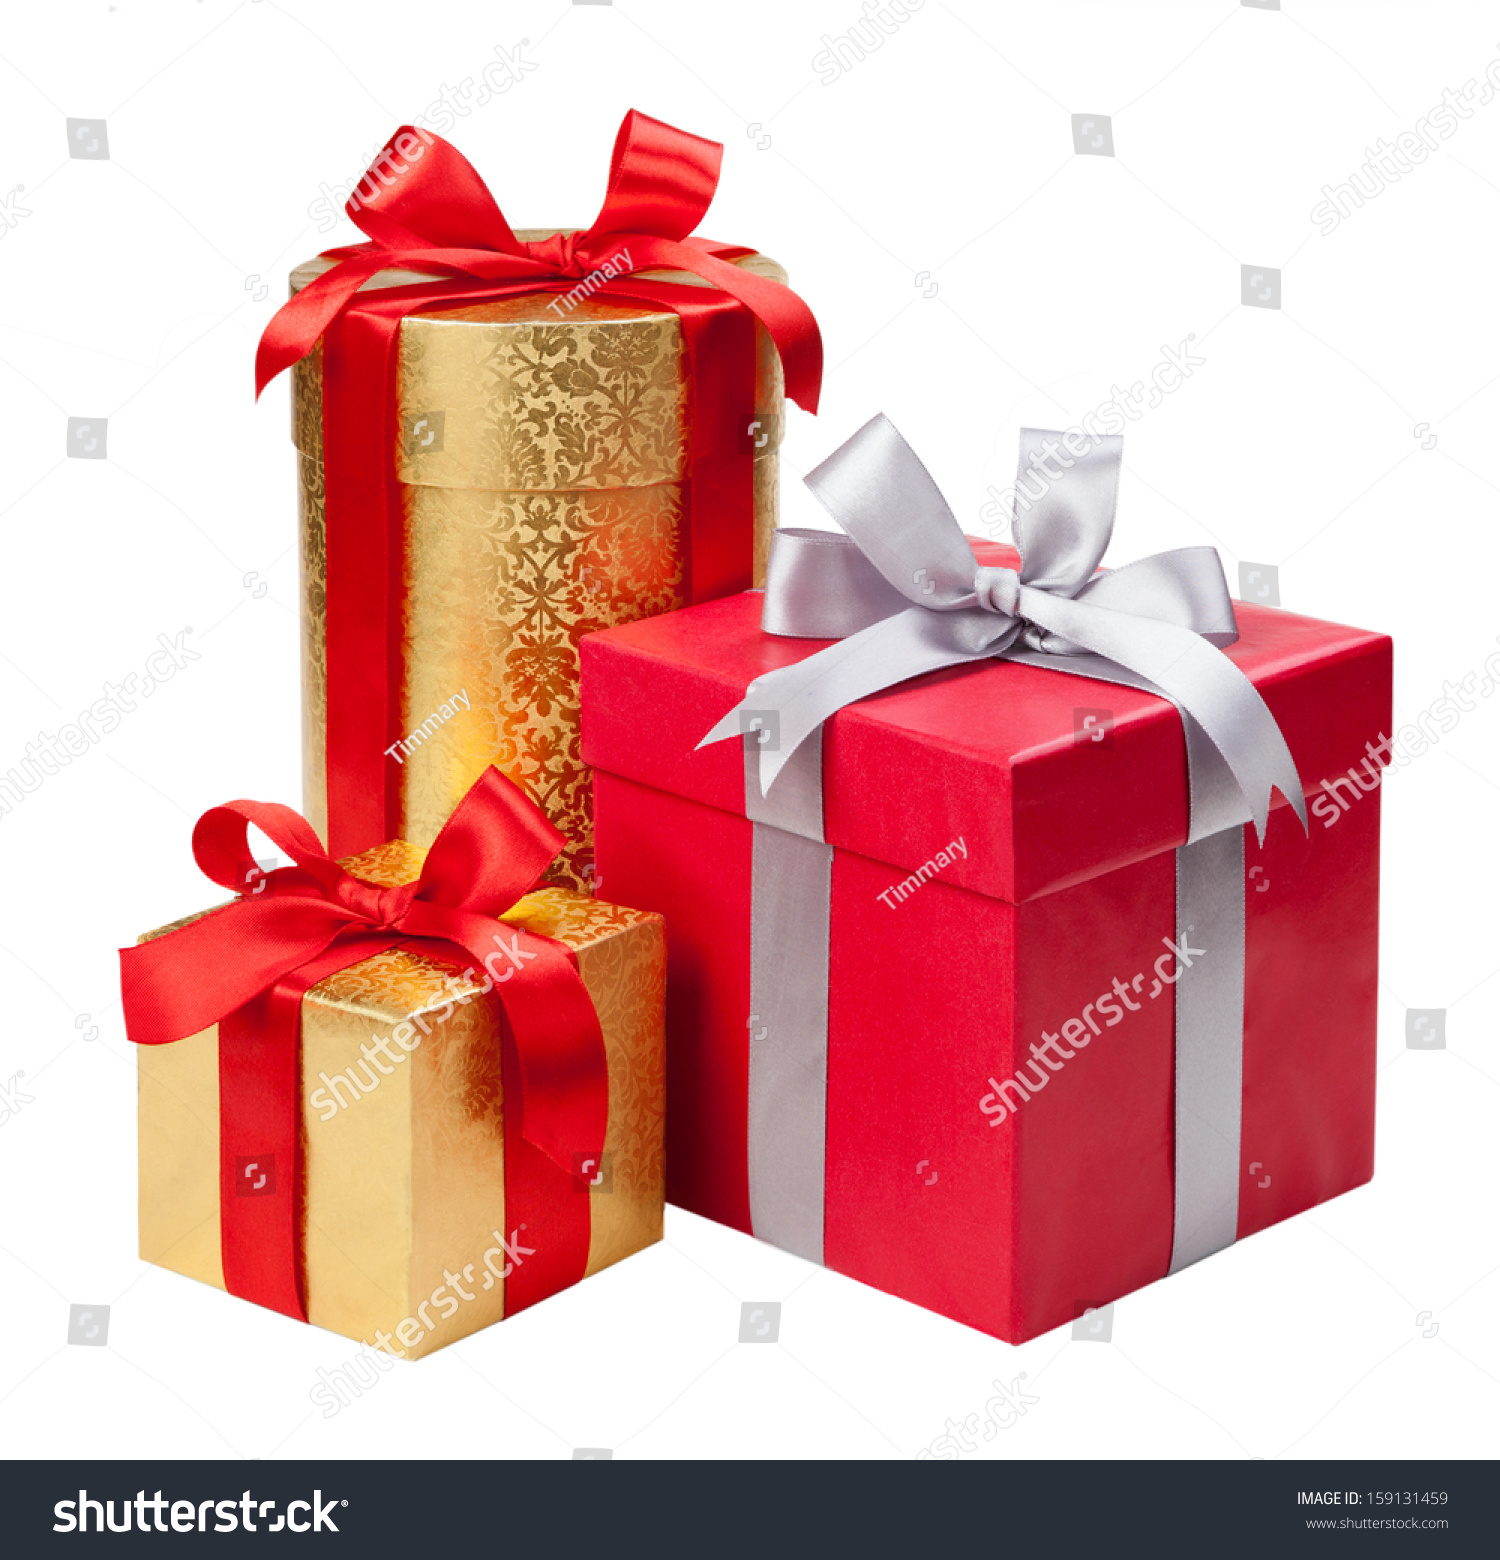 Gift boxes on white background #159131459